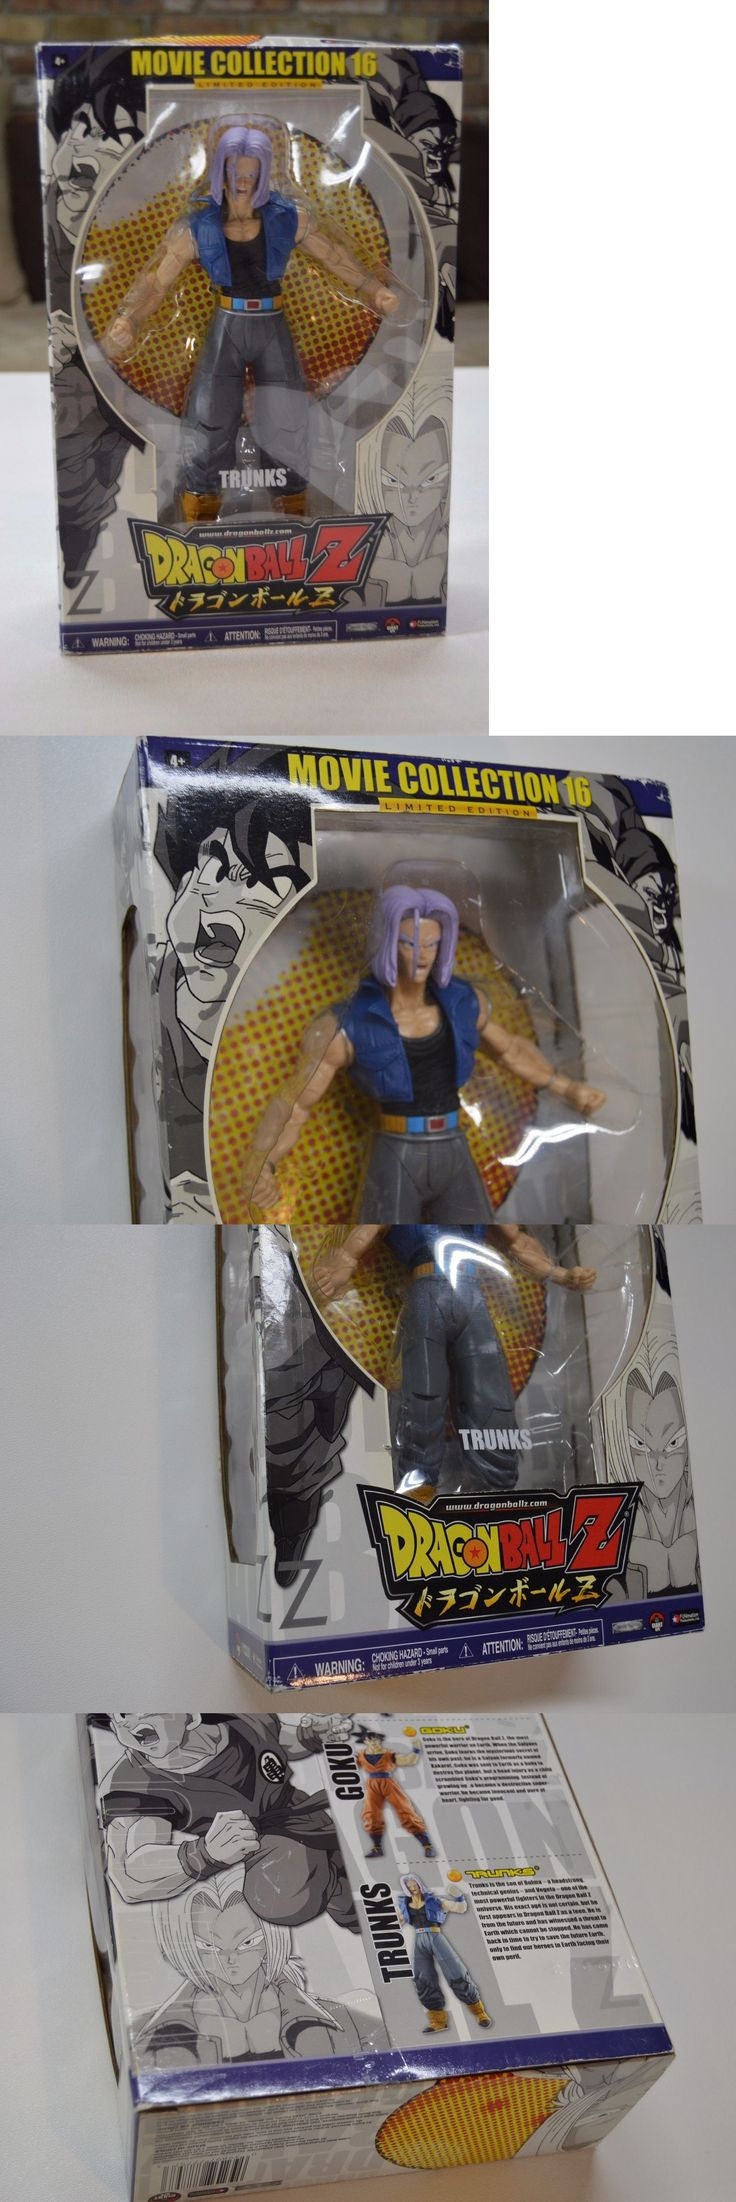 DragonBall Z 7117: Dragon Ball Z Movie Collection 16 Trunks Limited Very Rare! Fast Shipping! -> BUY IT NOW ONLY: $60 on eBay!